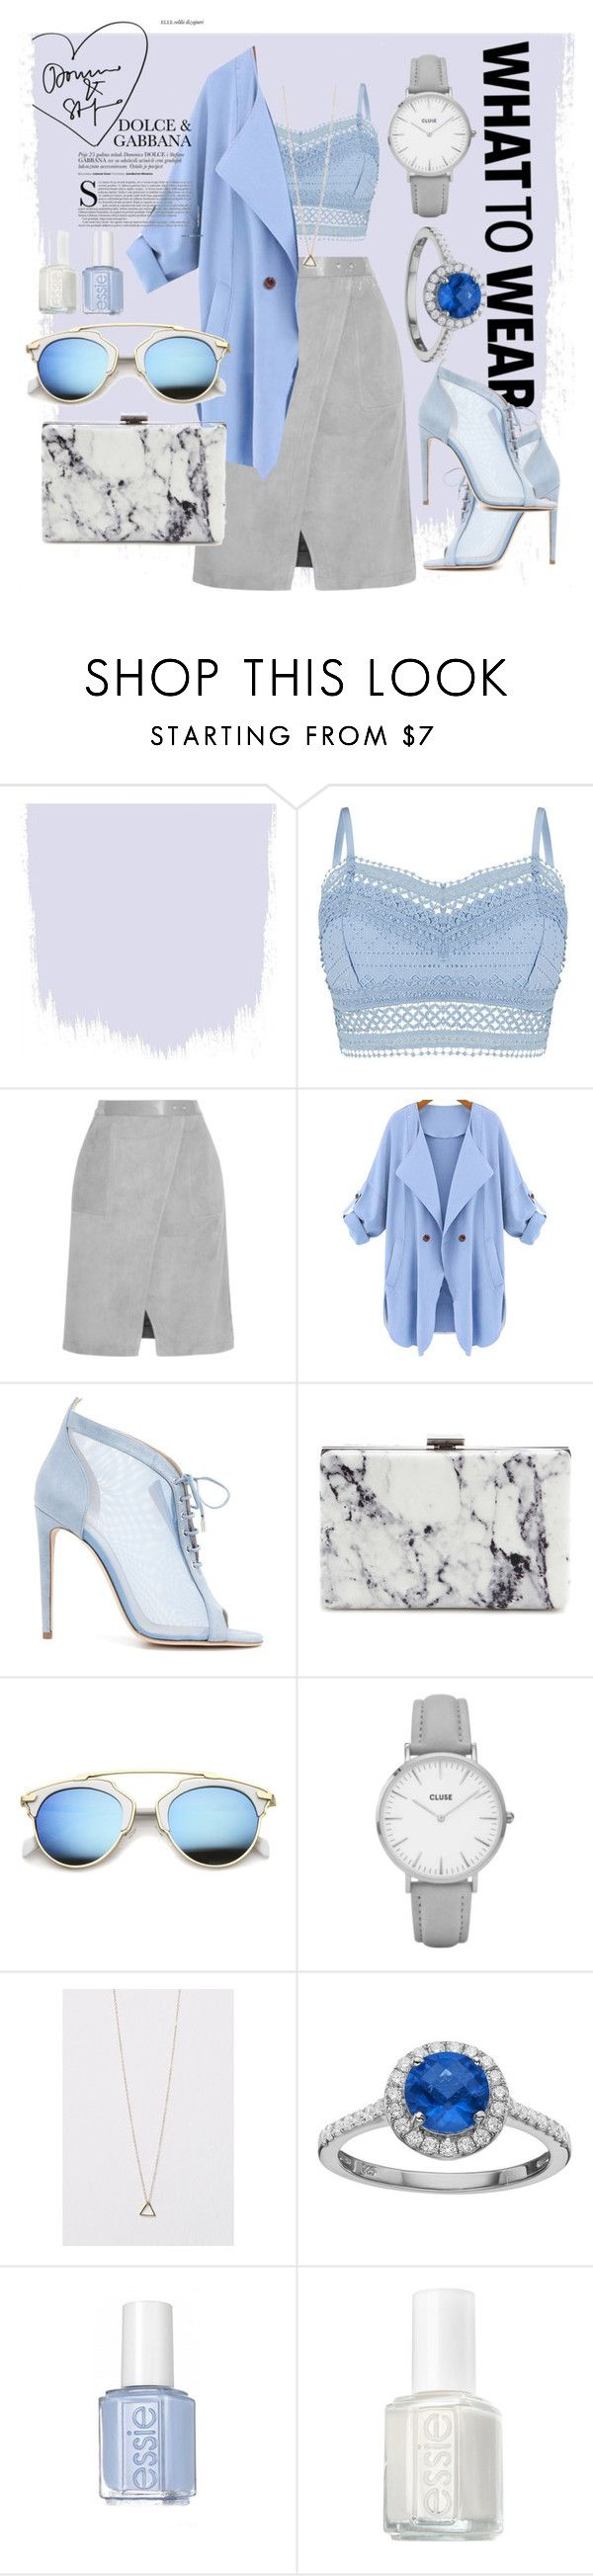 """Blue lagune mood."" by ro-mondryk on Polyvore featuring Lipsy, Halston Heritage, WithChic, Chloe Gosselin, Balenciaga, Topshop, Rebecca Sloane and Essie"